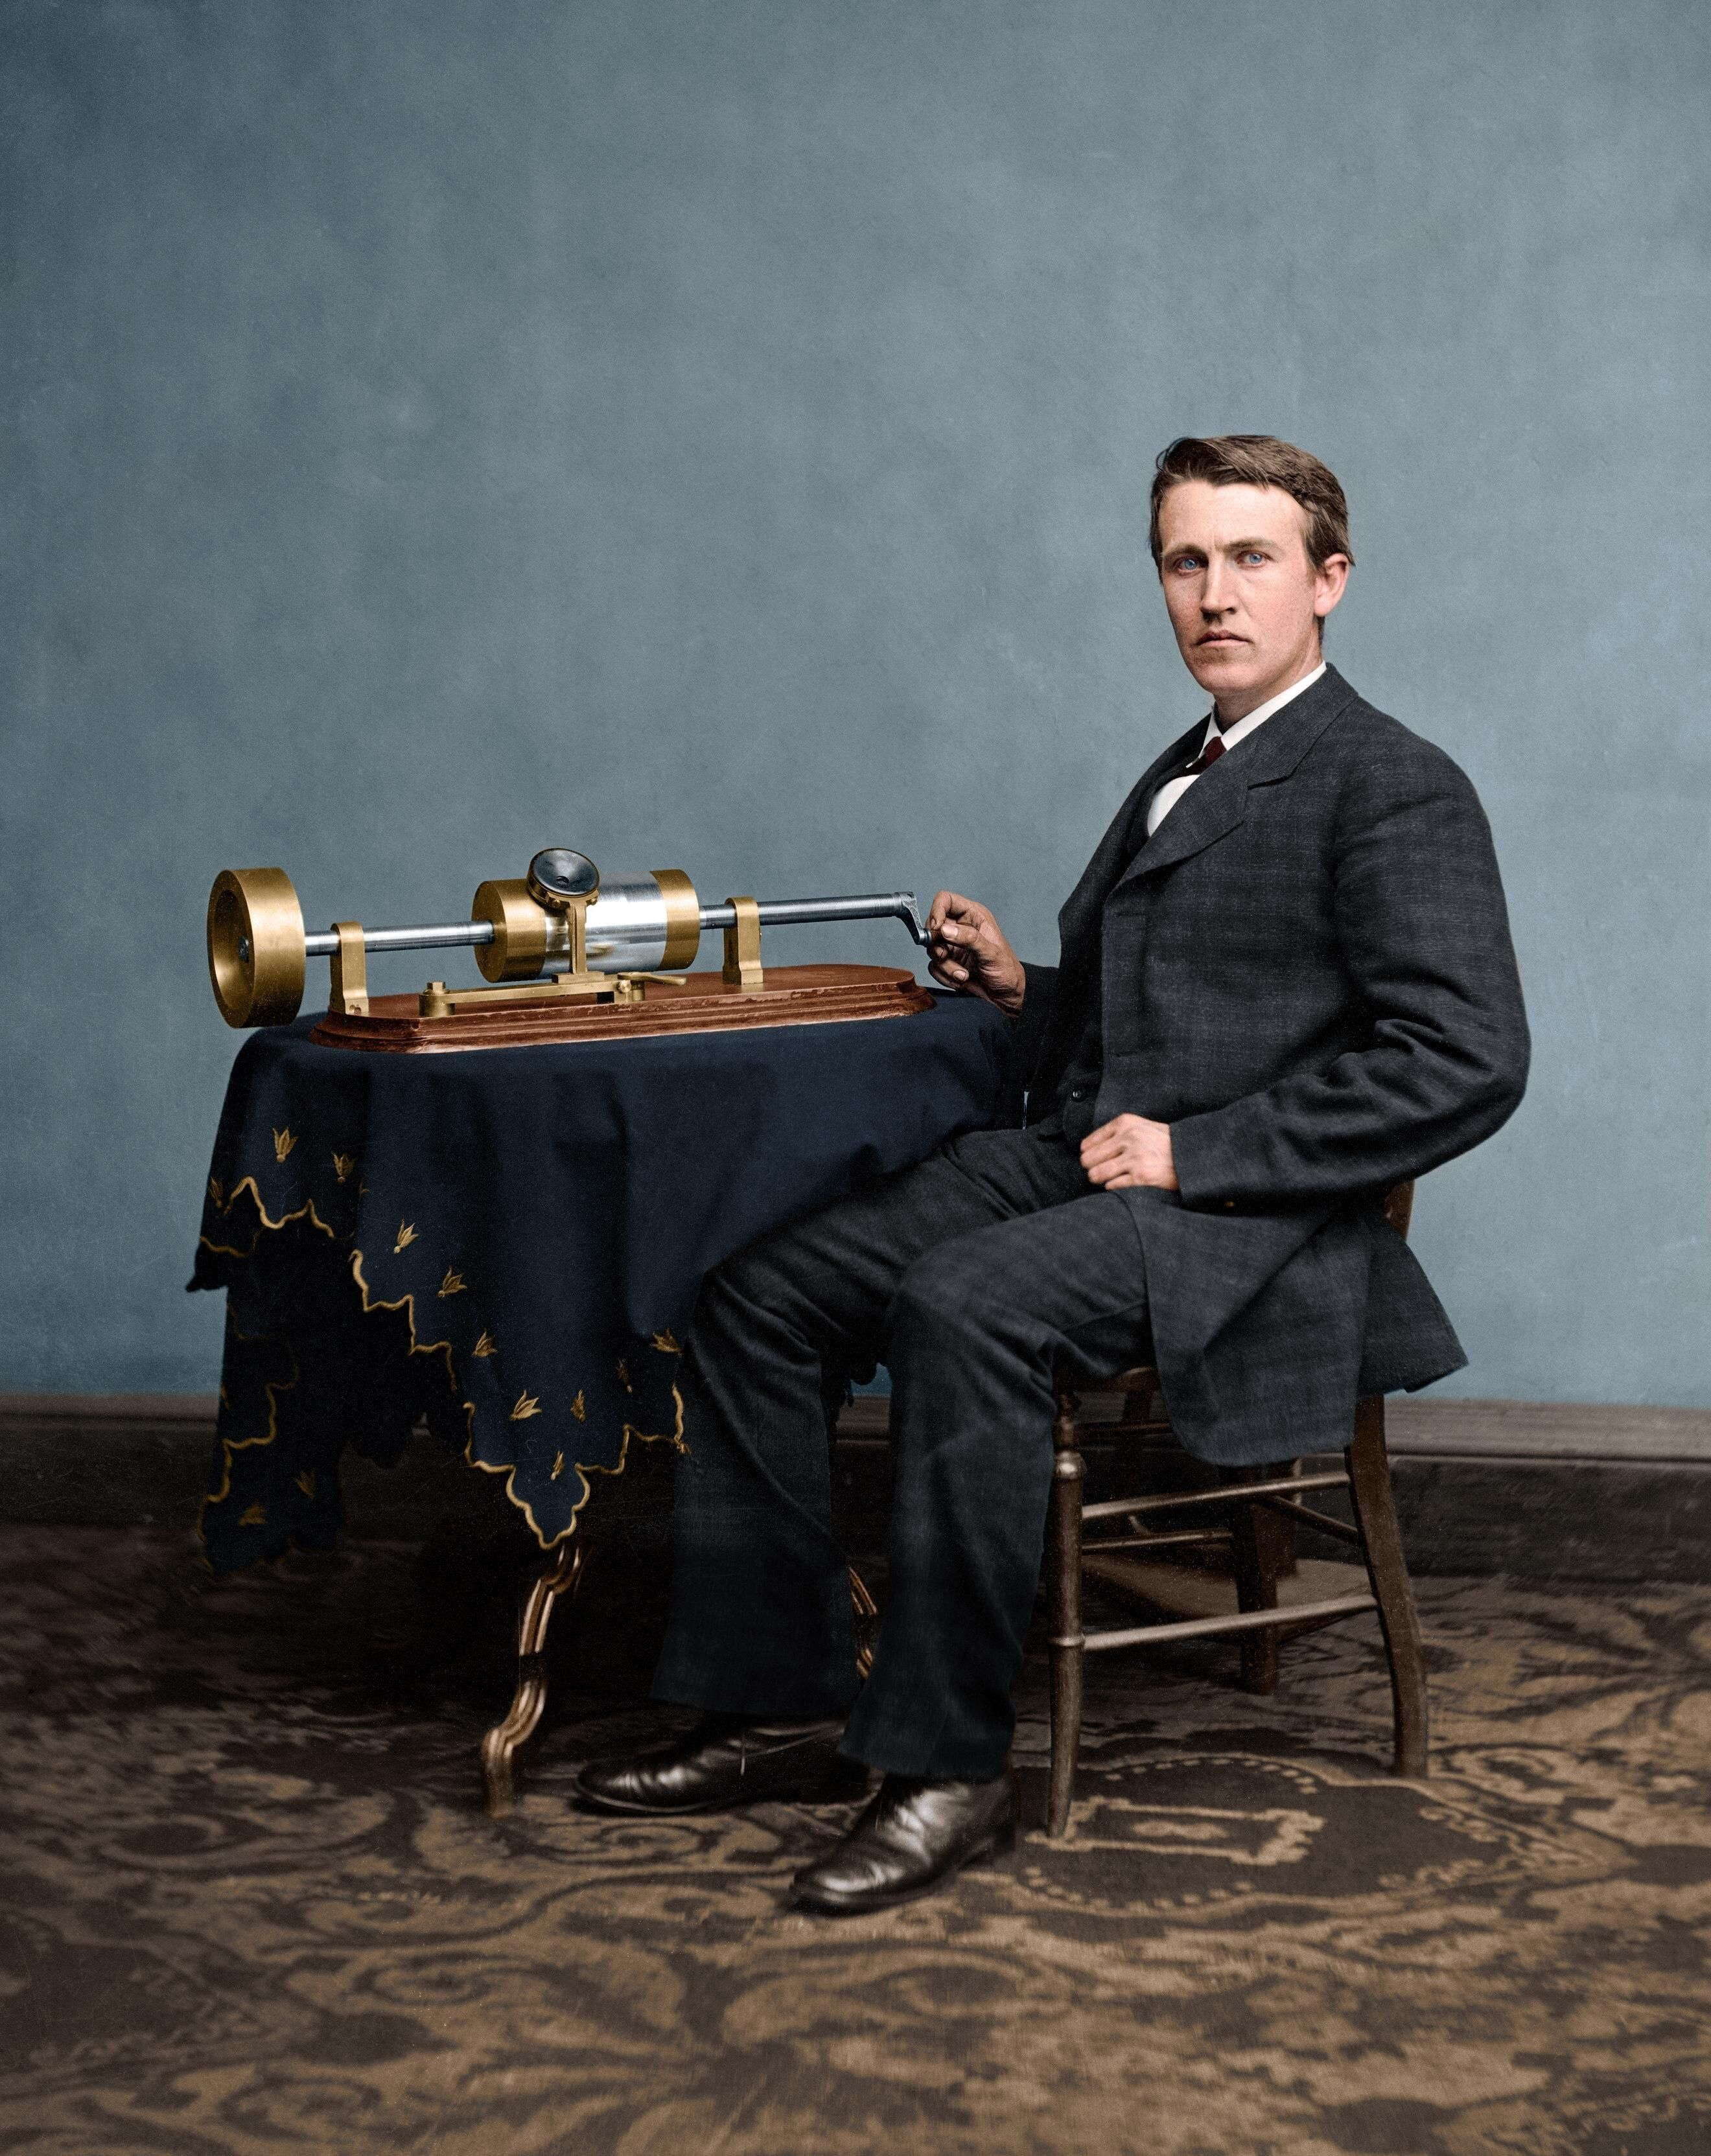 Thomas Edison with his second phonograph taken by Mathew Brady in 1878